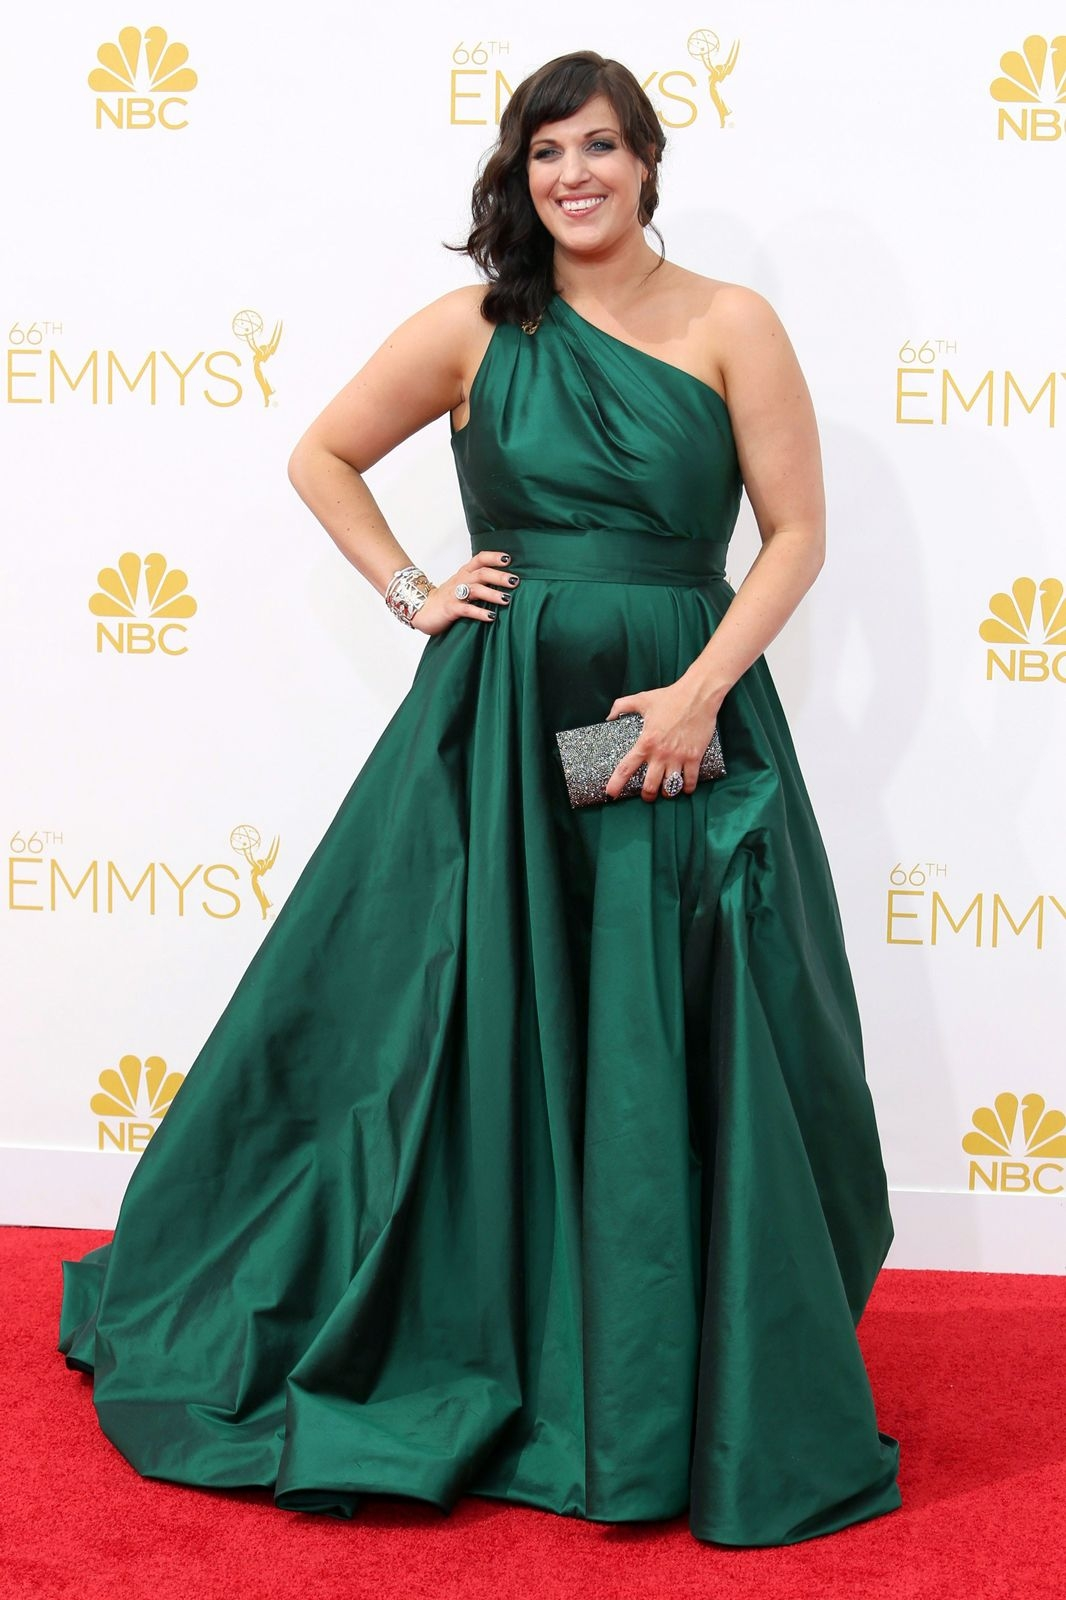 2a06c73edb0b0 Best Emmy Plus Size Looks Red Carpet Fashion for sizing 1066 X 1600 ...